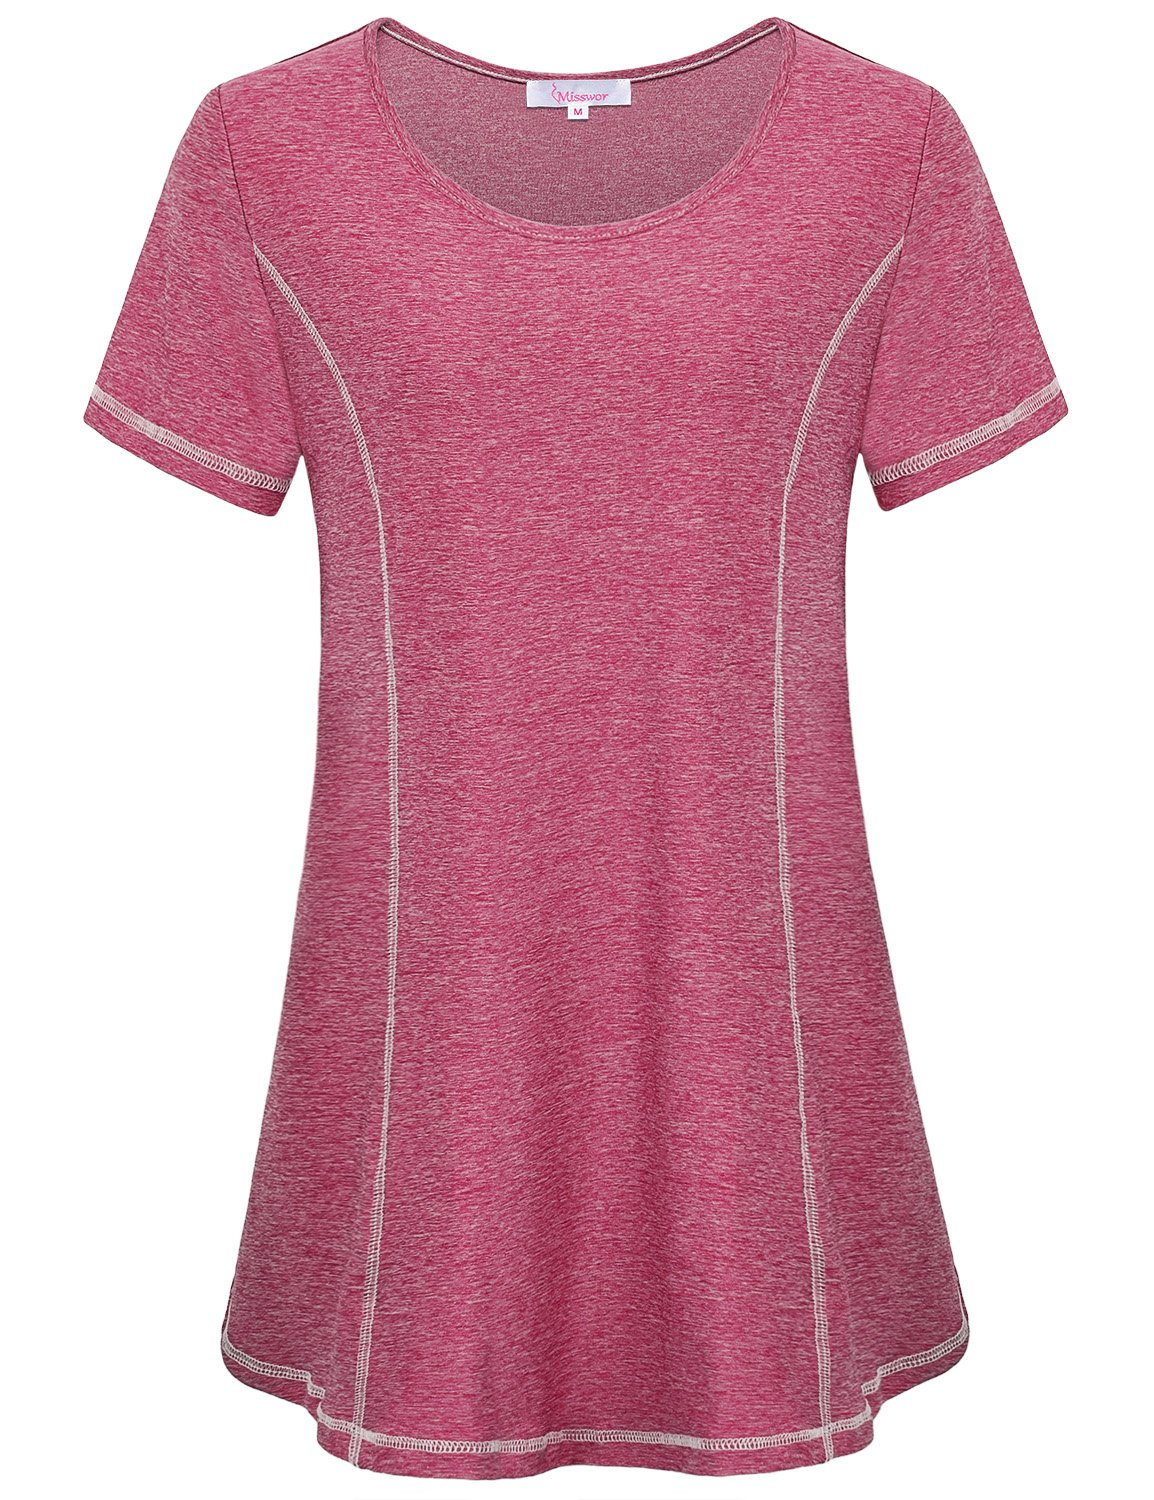 Misswor Active Shirt, Workout T-Shirt Tops Short Sleeve Round Neck Breathable Lightweight Blouse Top for Summer Red XL